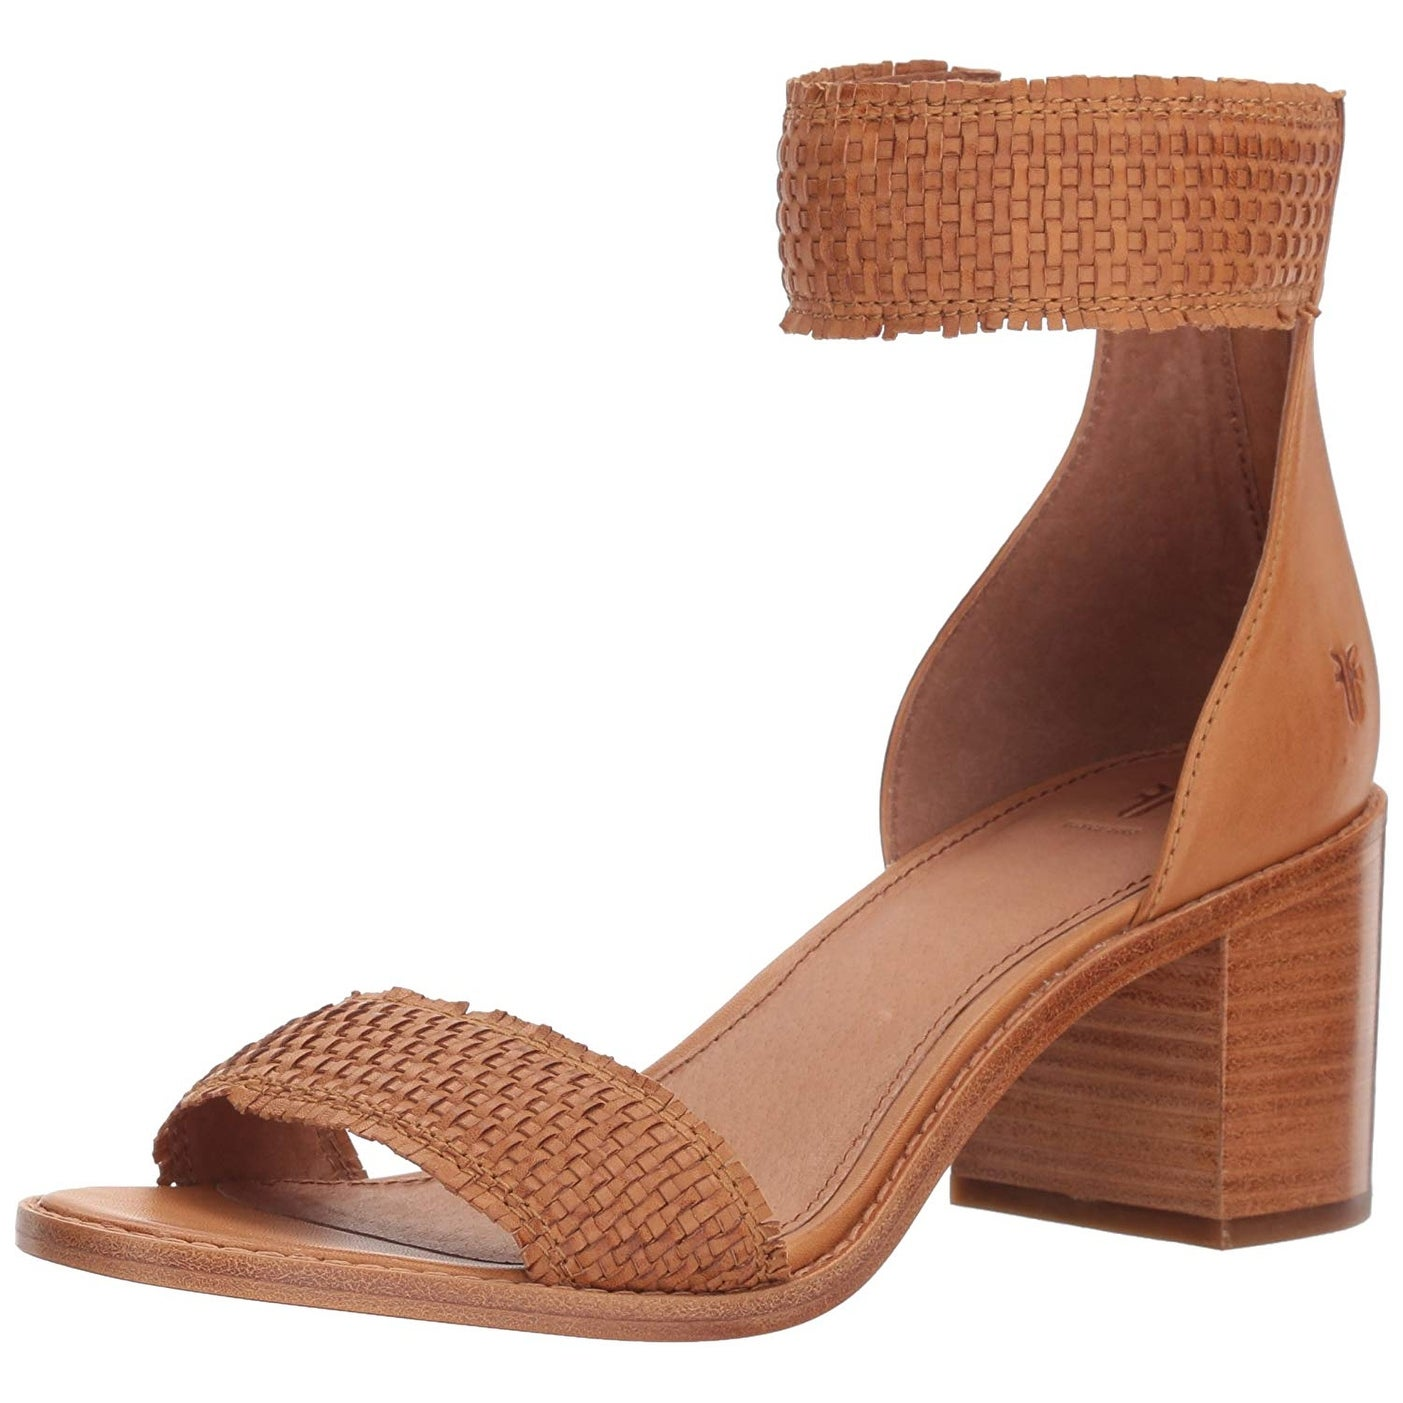 ace069115fb4 Shop Frye Womens Bianca Woven Leather Open Toe Casual Espadrille Sandals -  Free Shipping Today - Overstock - 25559889